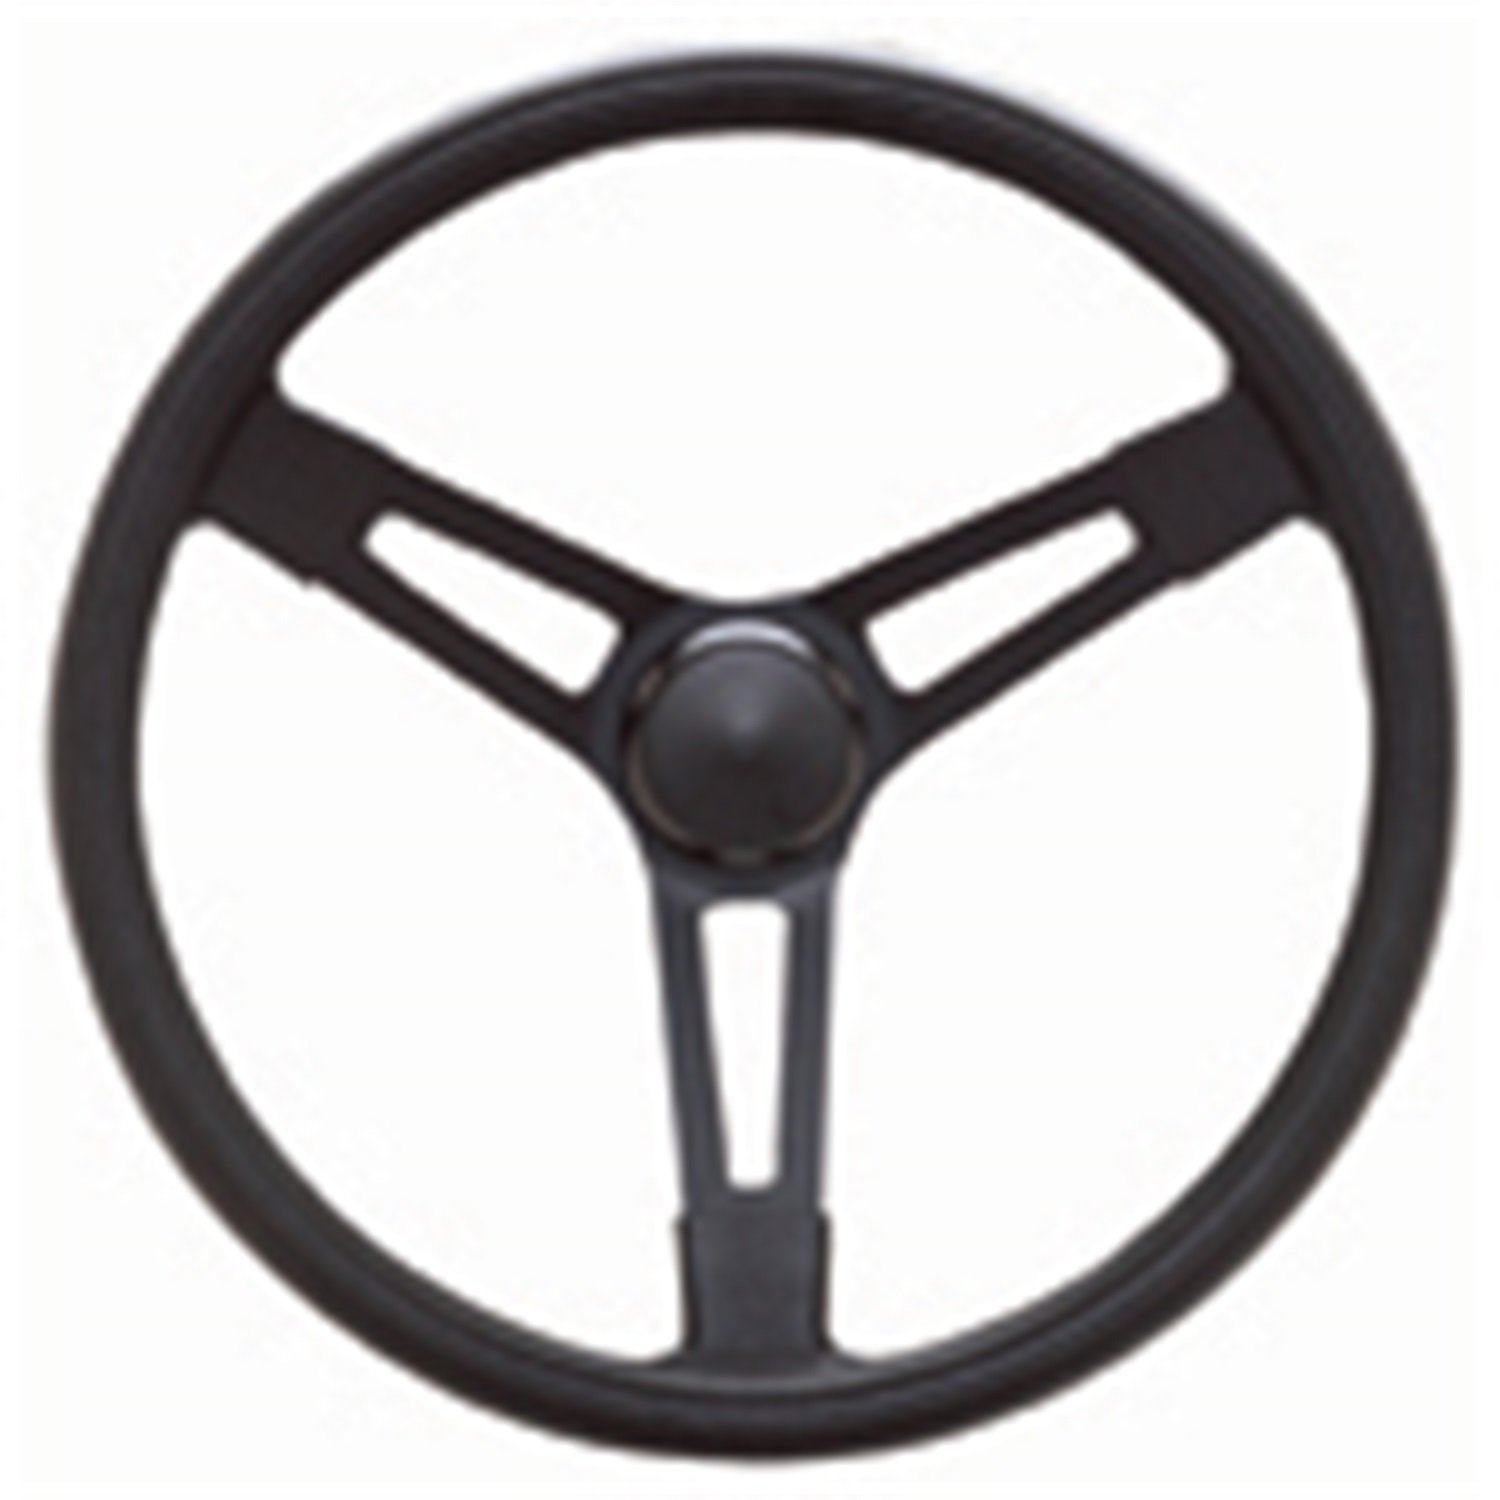 Grant Products 675 Racing Wheel